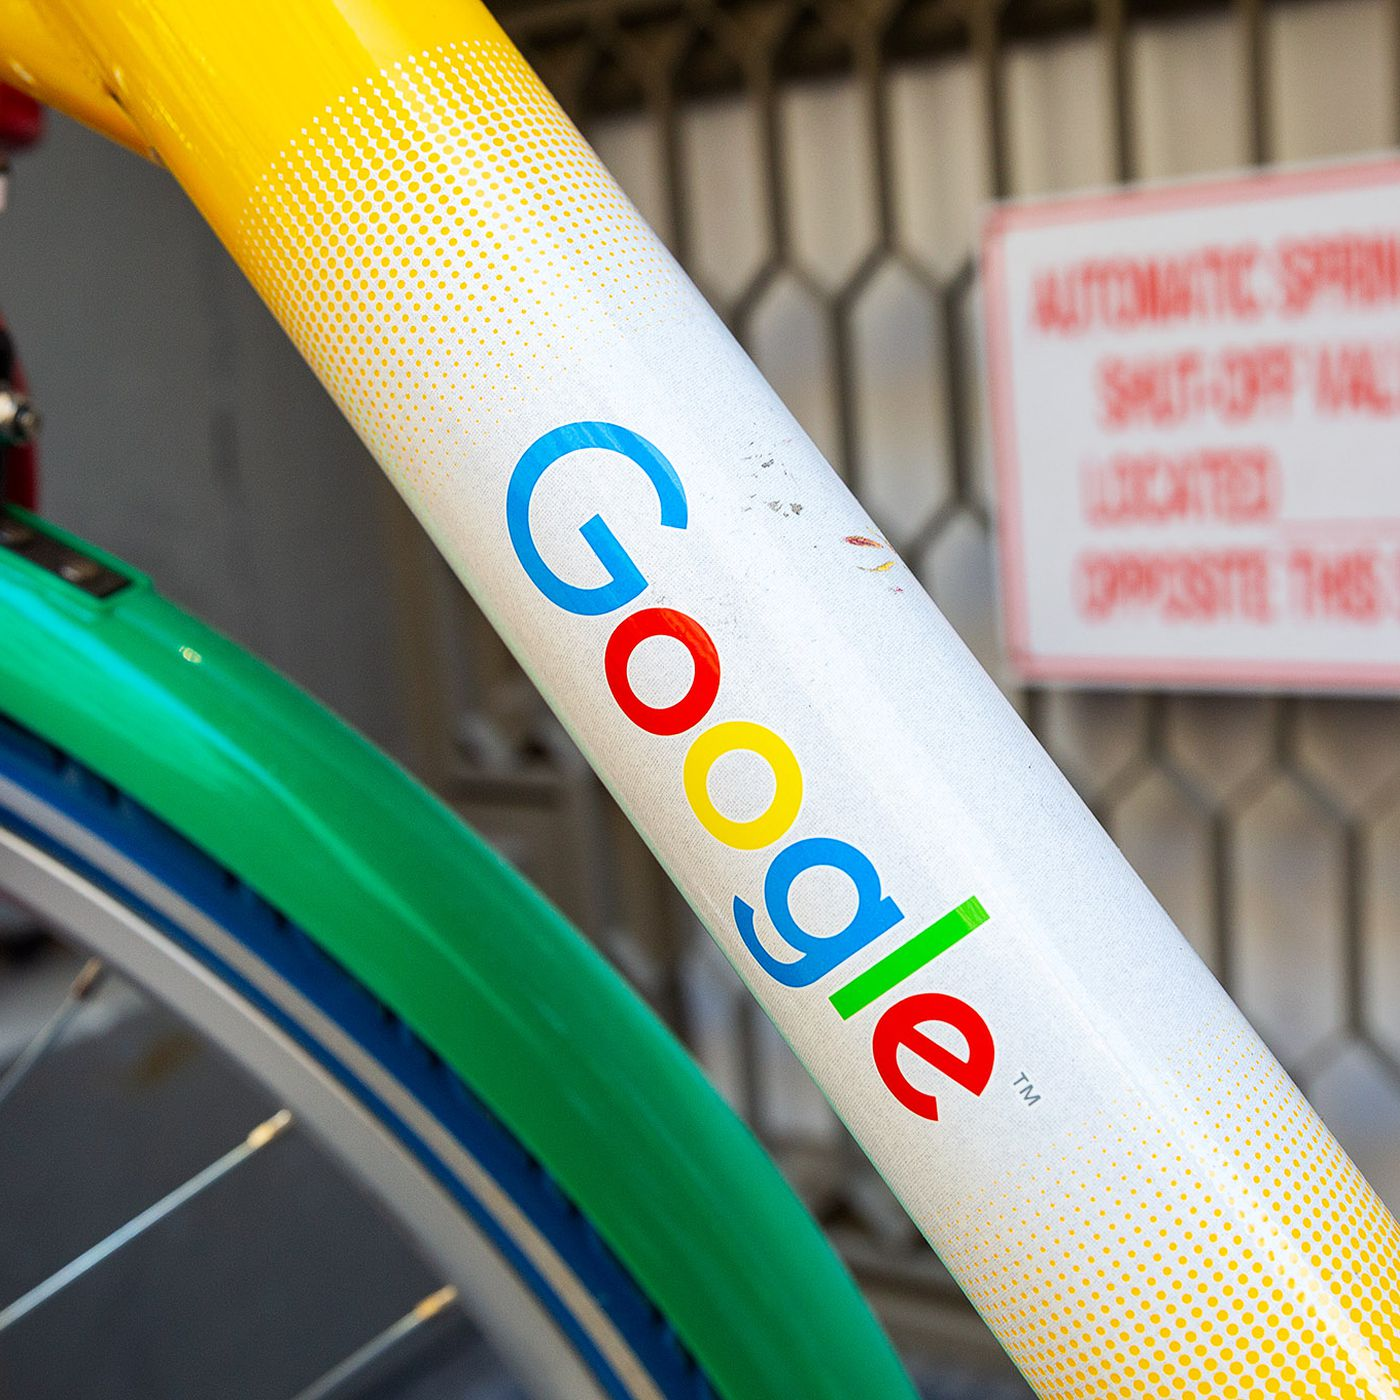 theverge.com - Dami Lee - Google hires a health care CEO to organize its fragmented health initiatives